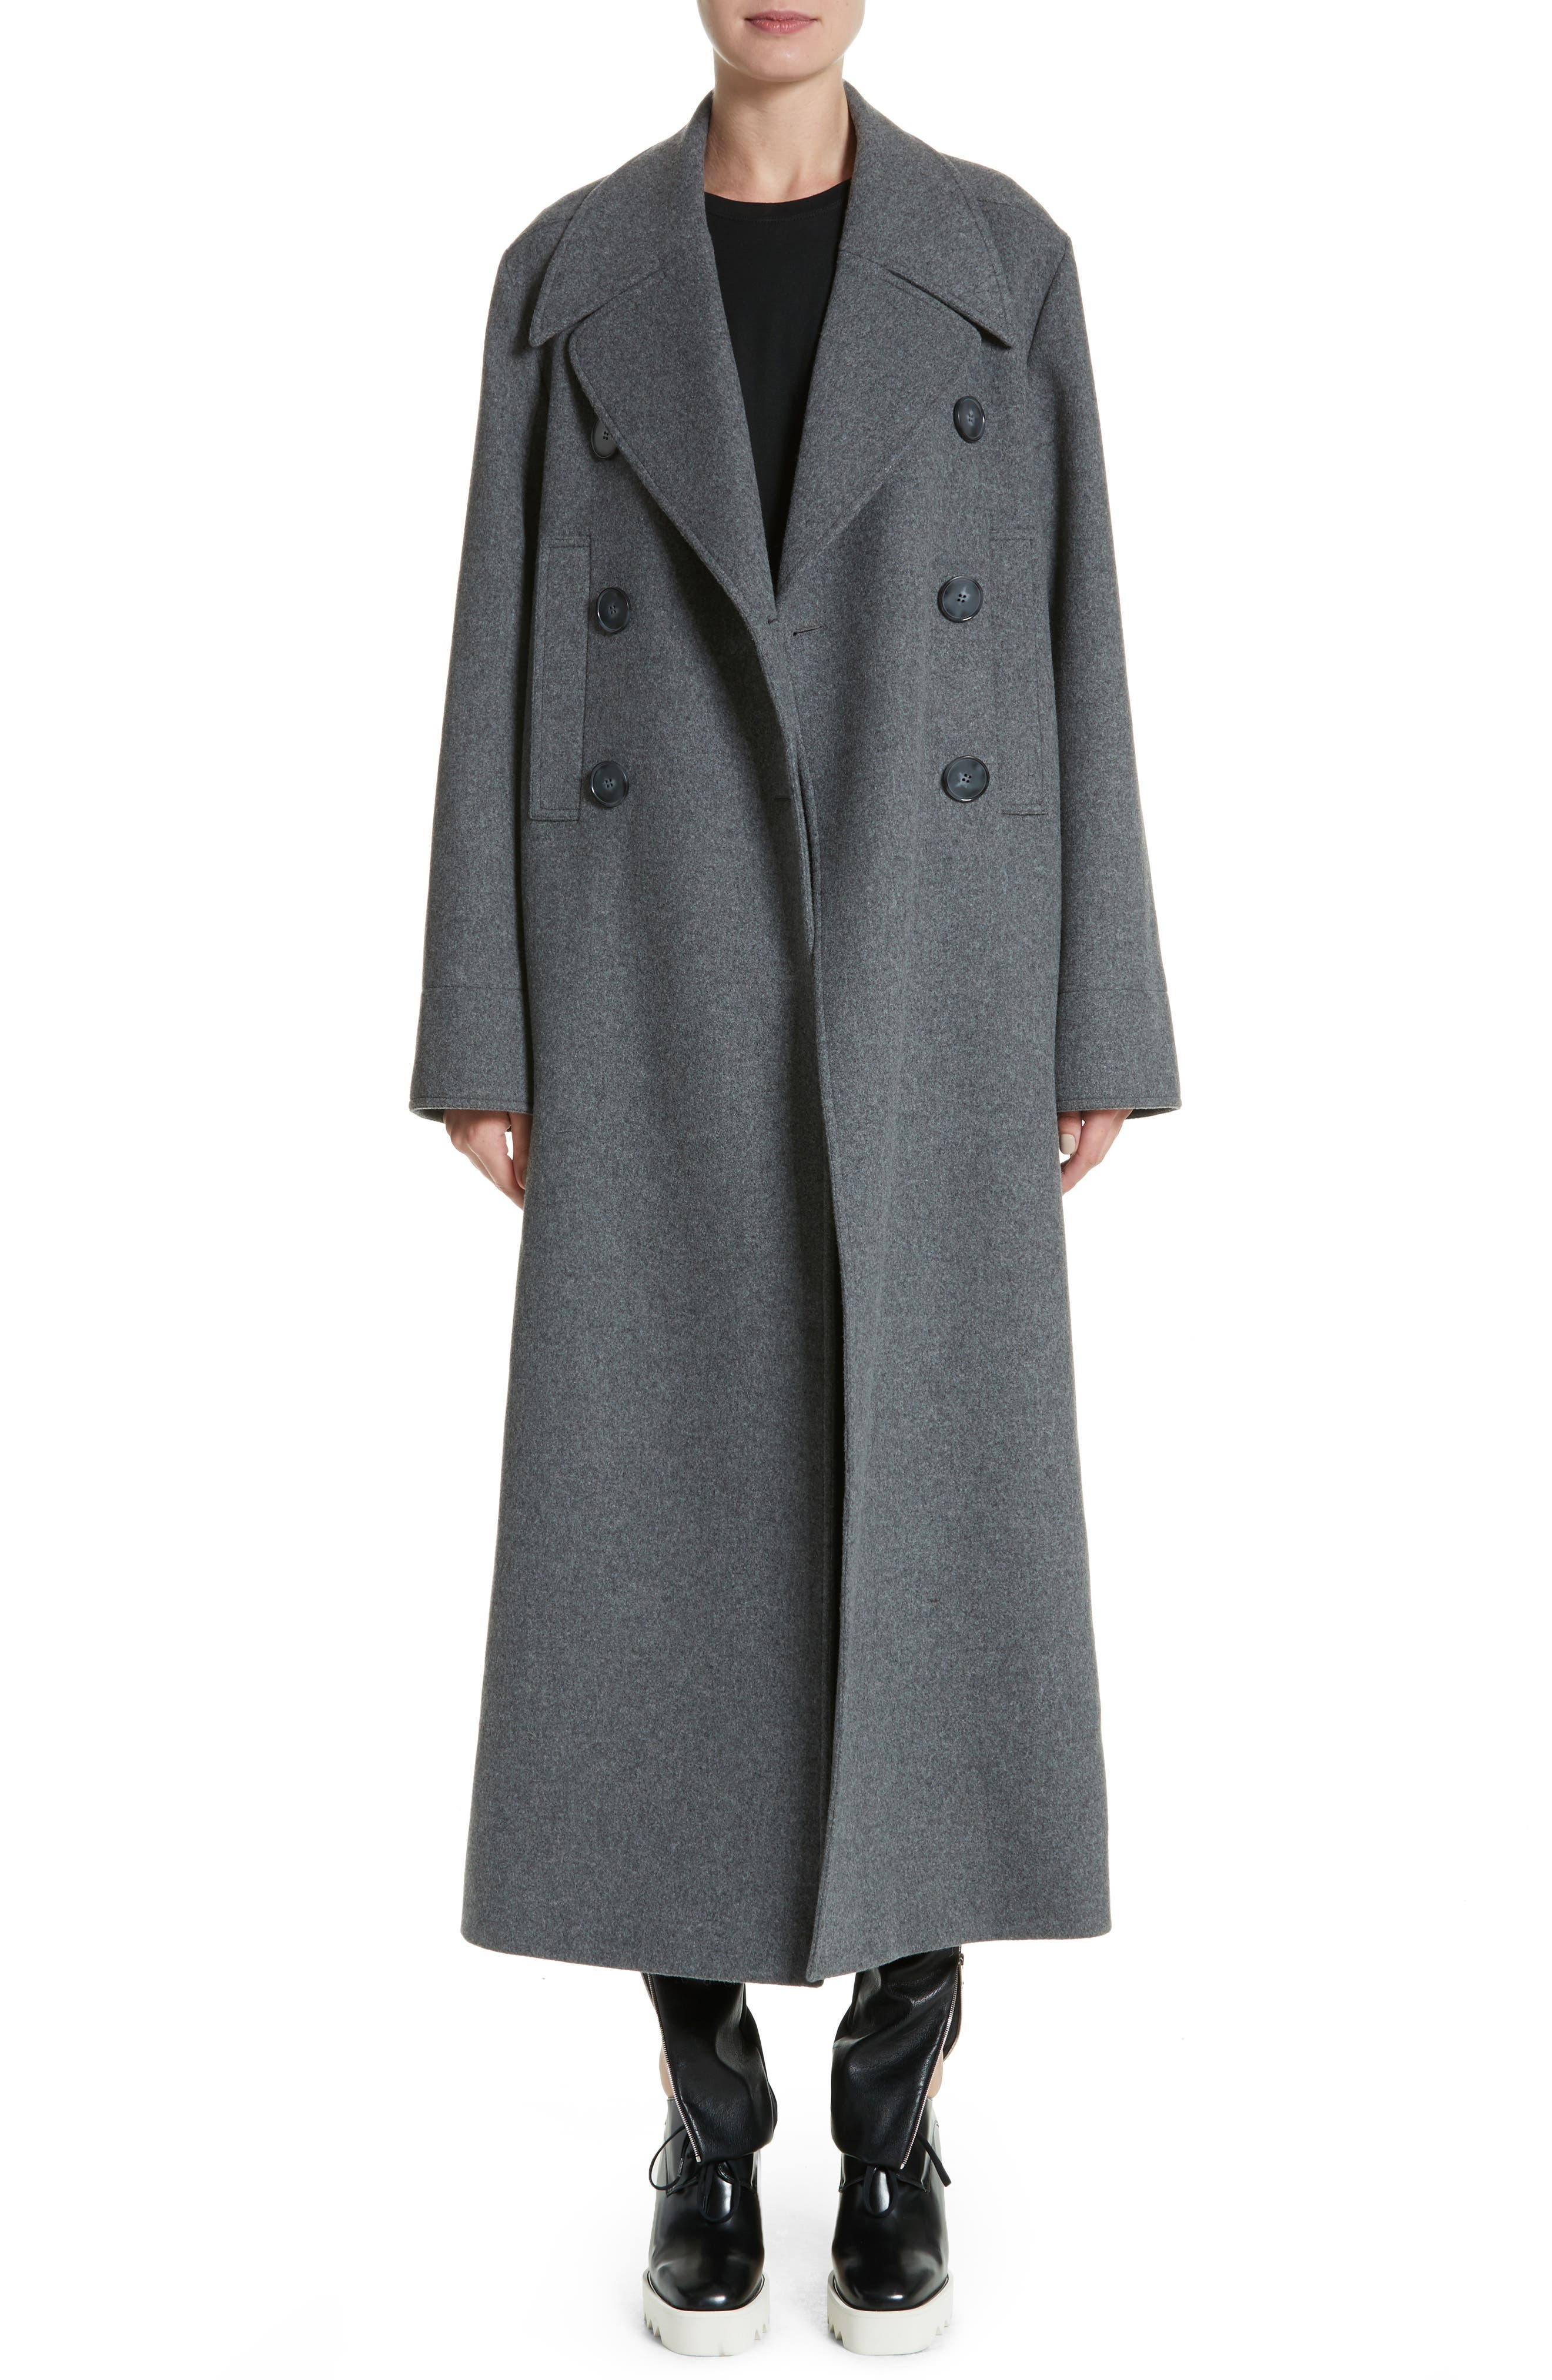 Edwina Long Double Breasted Wool Blend Coat,                         Main,                         color, Graphite